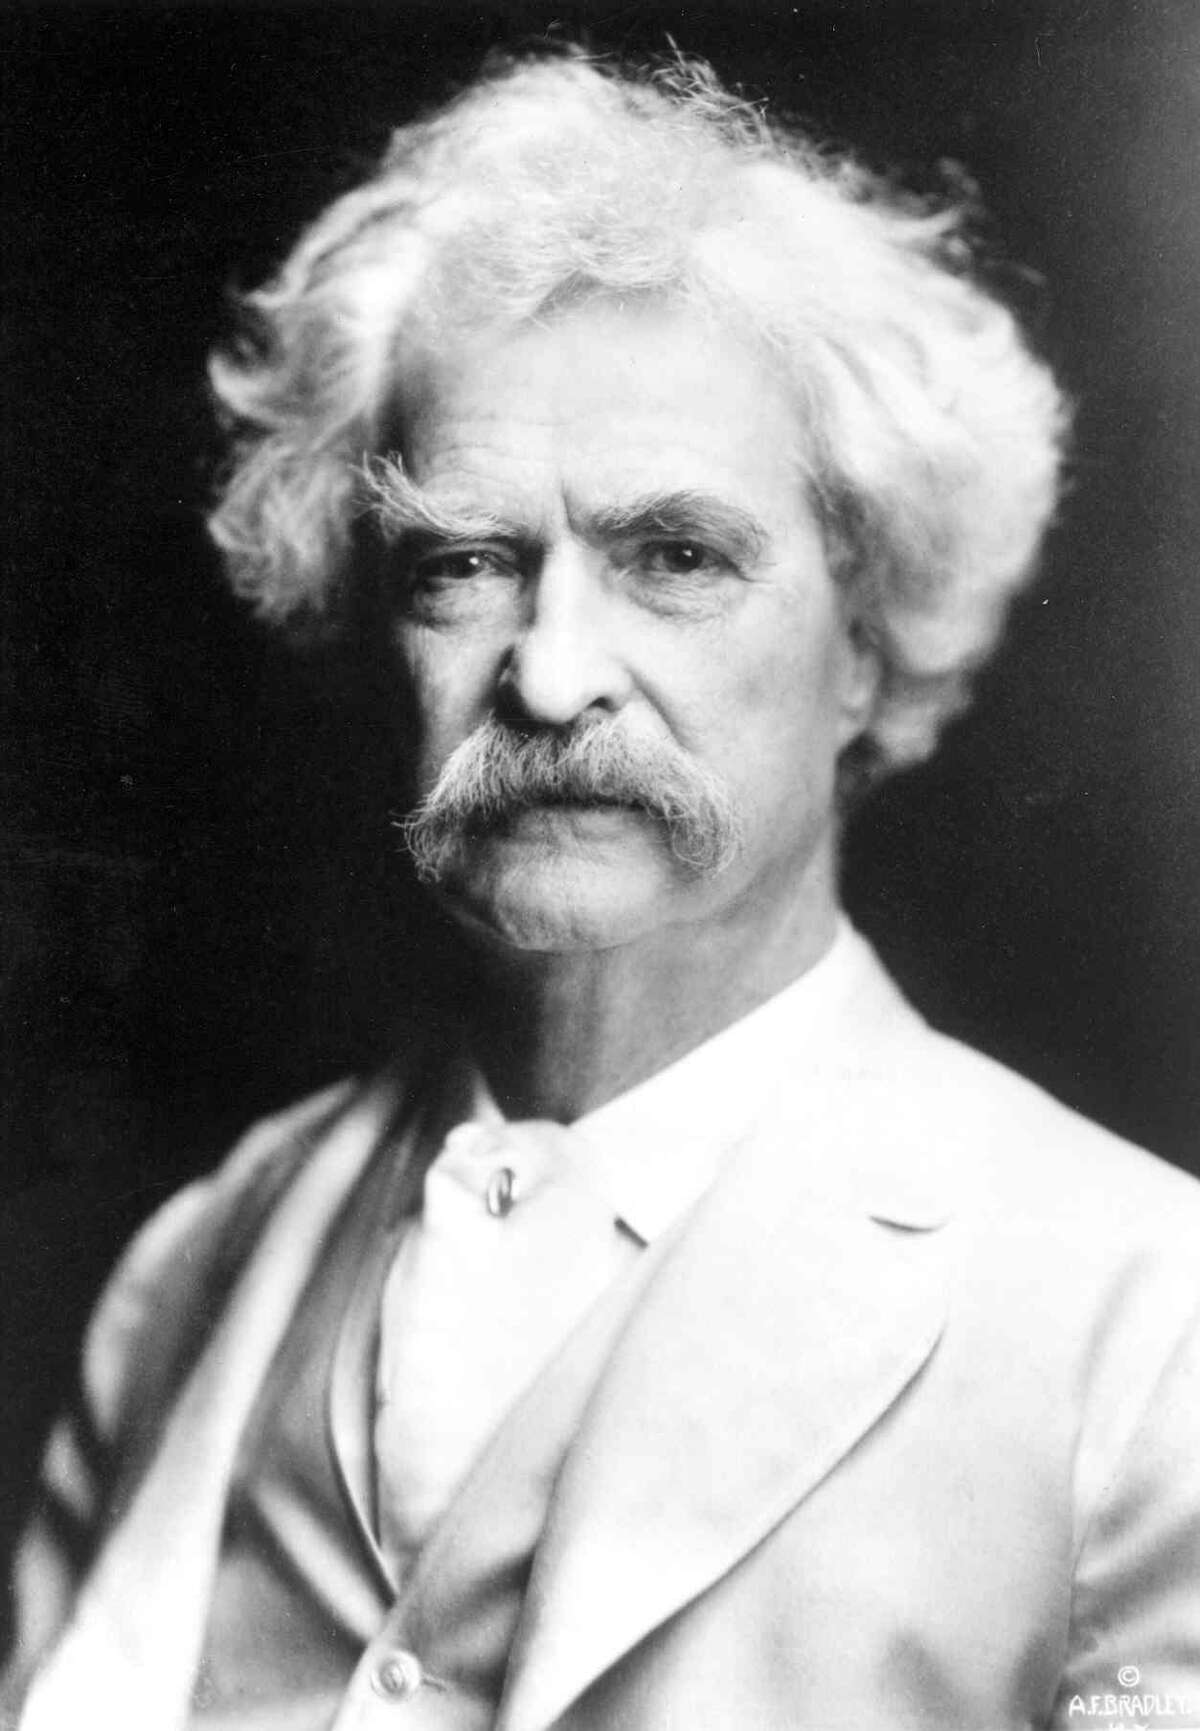 Author Mark Twain, born Samuel Langhorne Clemens, is shown. Twain's funny, insightful observations about the presidents of his day can apply readily to the modern presidency. The topic will be discussed Dec. 7, from 1 to 3 p.m., the Greenwich Library's Flinn Gallery.